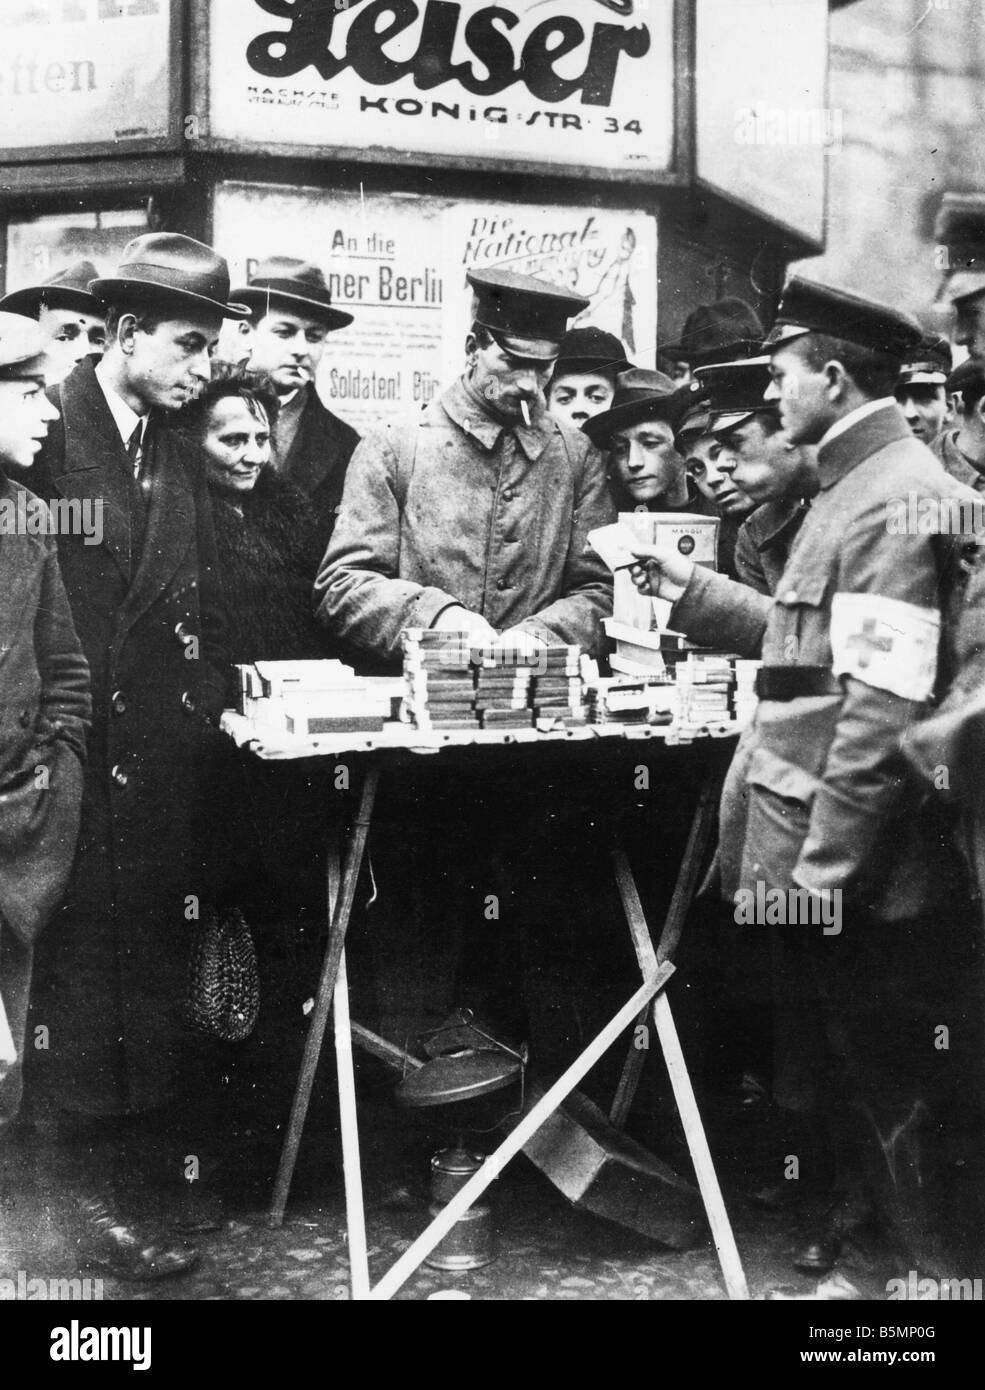 8 1919 1 0 A1 Soldier as Cigarette Trader Photo 1919 Berlin end of the war and Revolution 1918 19 Soldier of the - Stock Image